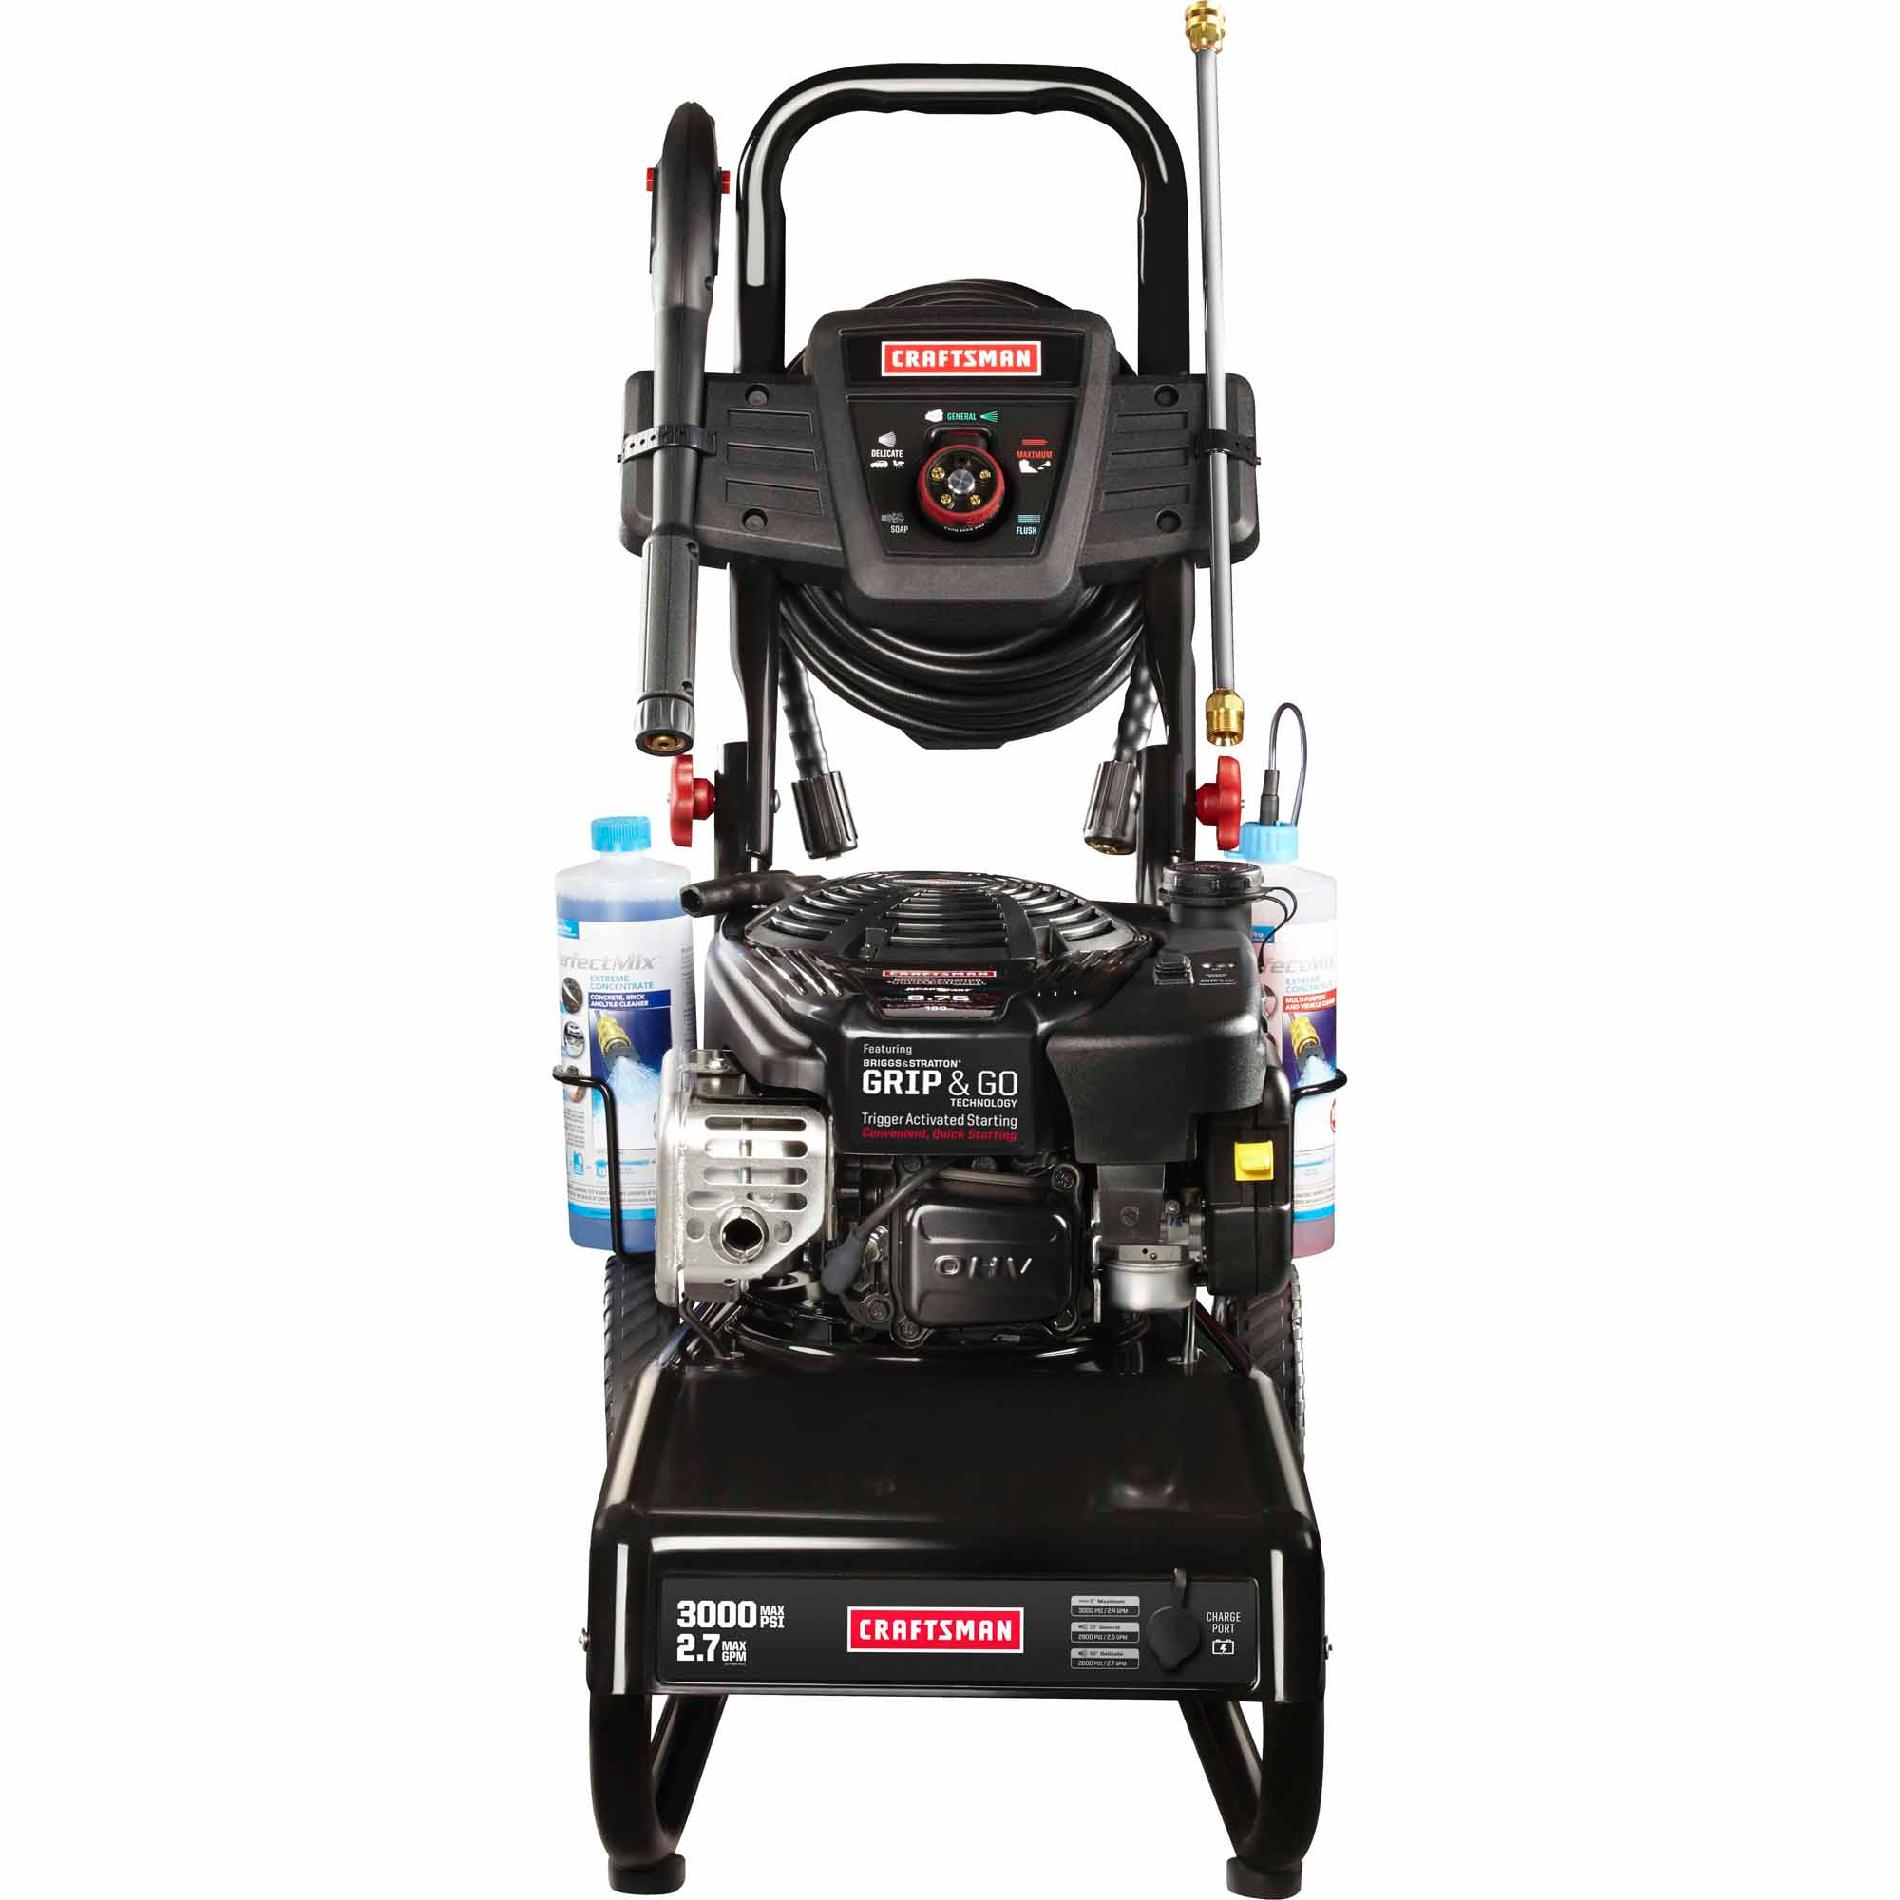 Craftsman 3000 PSI Gas Pressure Washer w/ Grip & GO